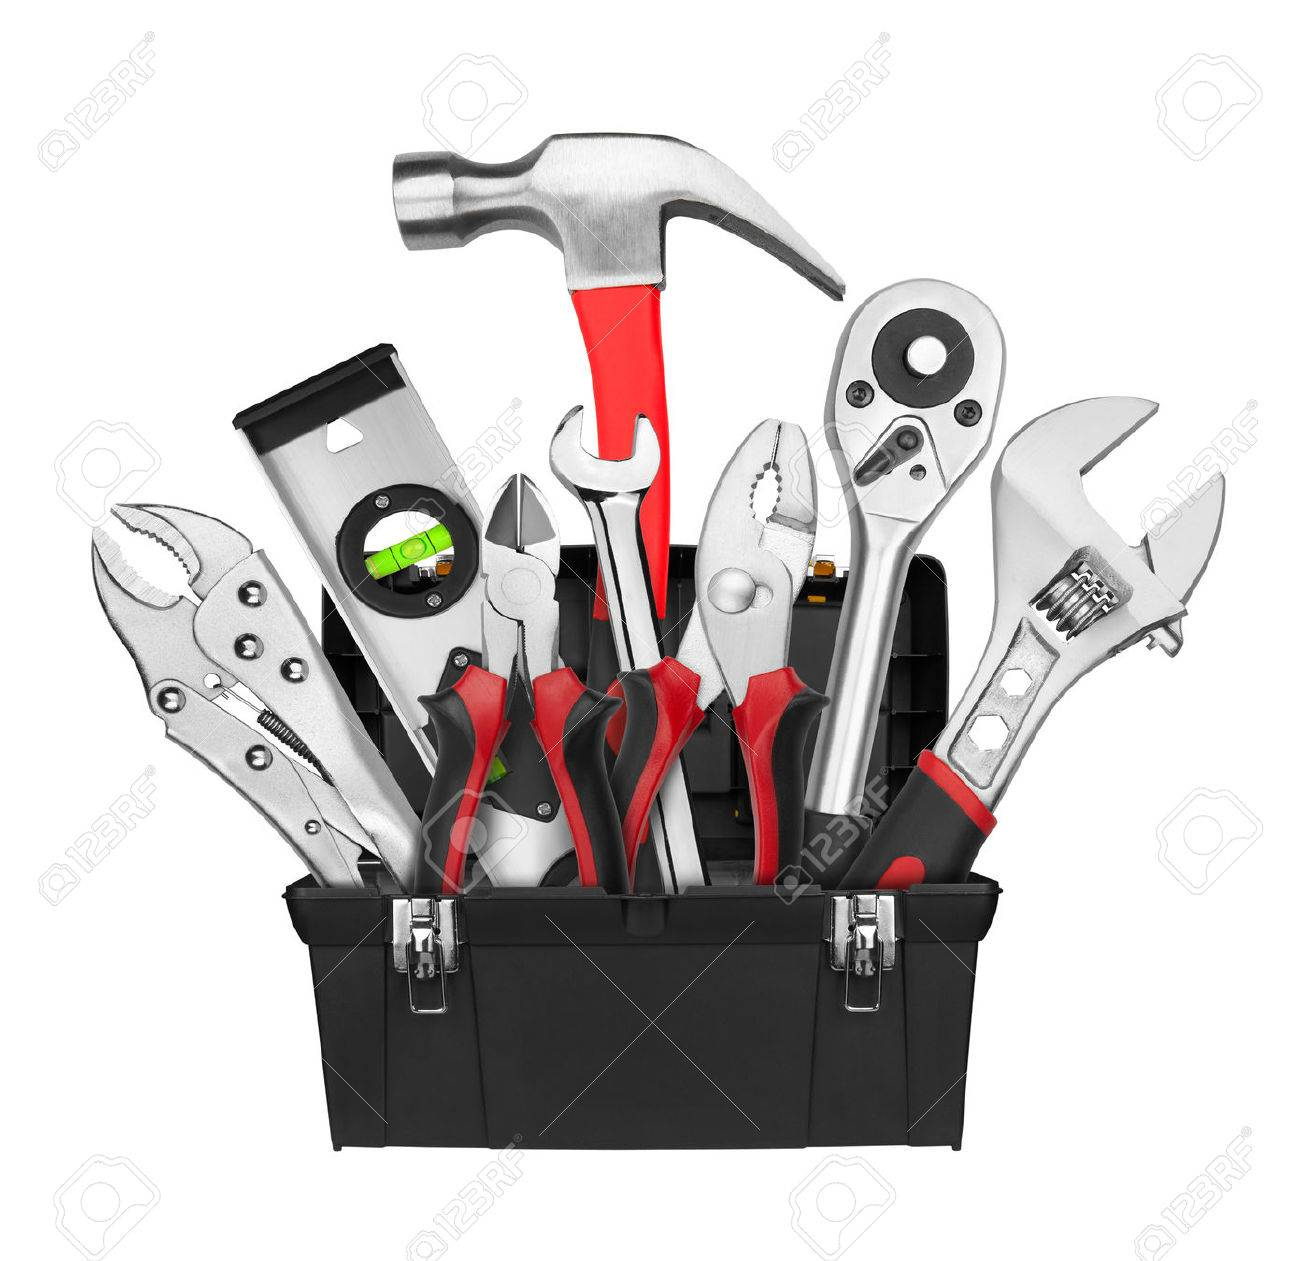 Many Tools in tool box, isolated on white background - 30916334